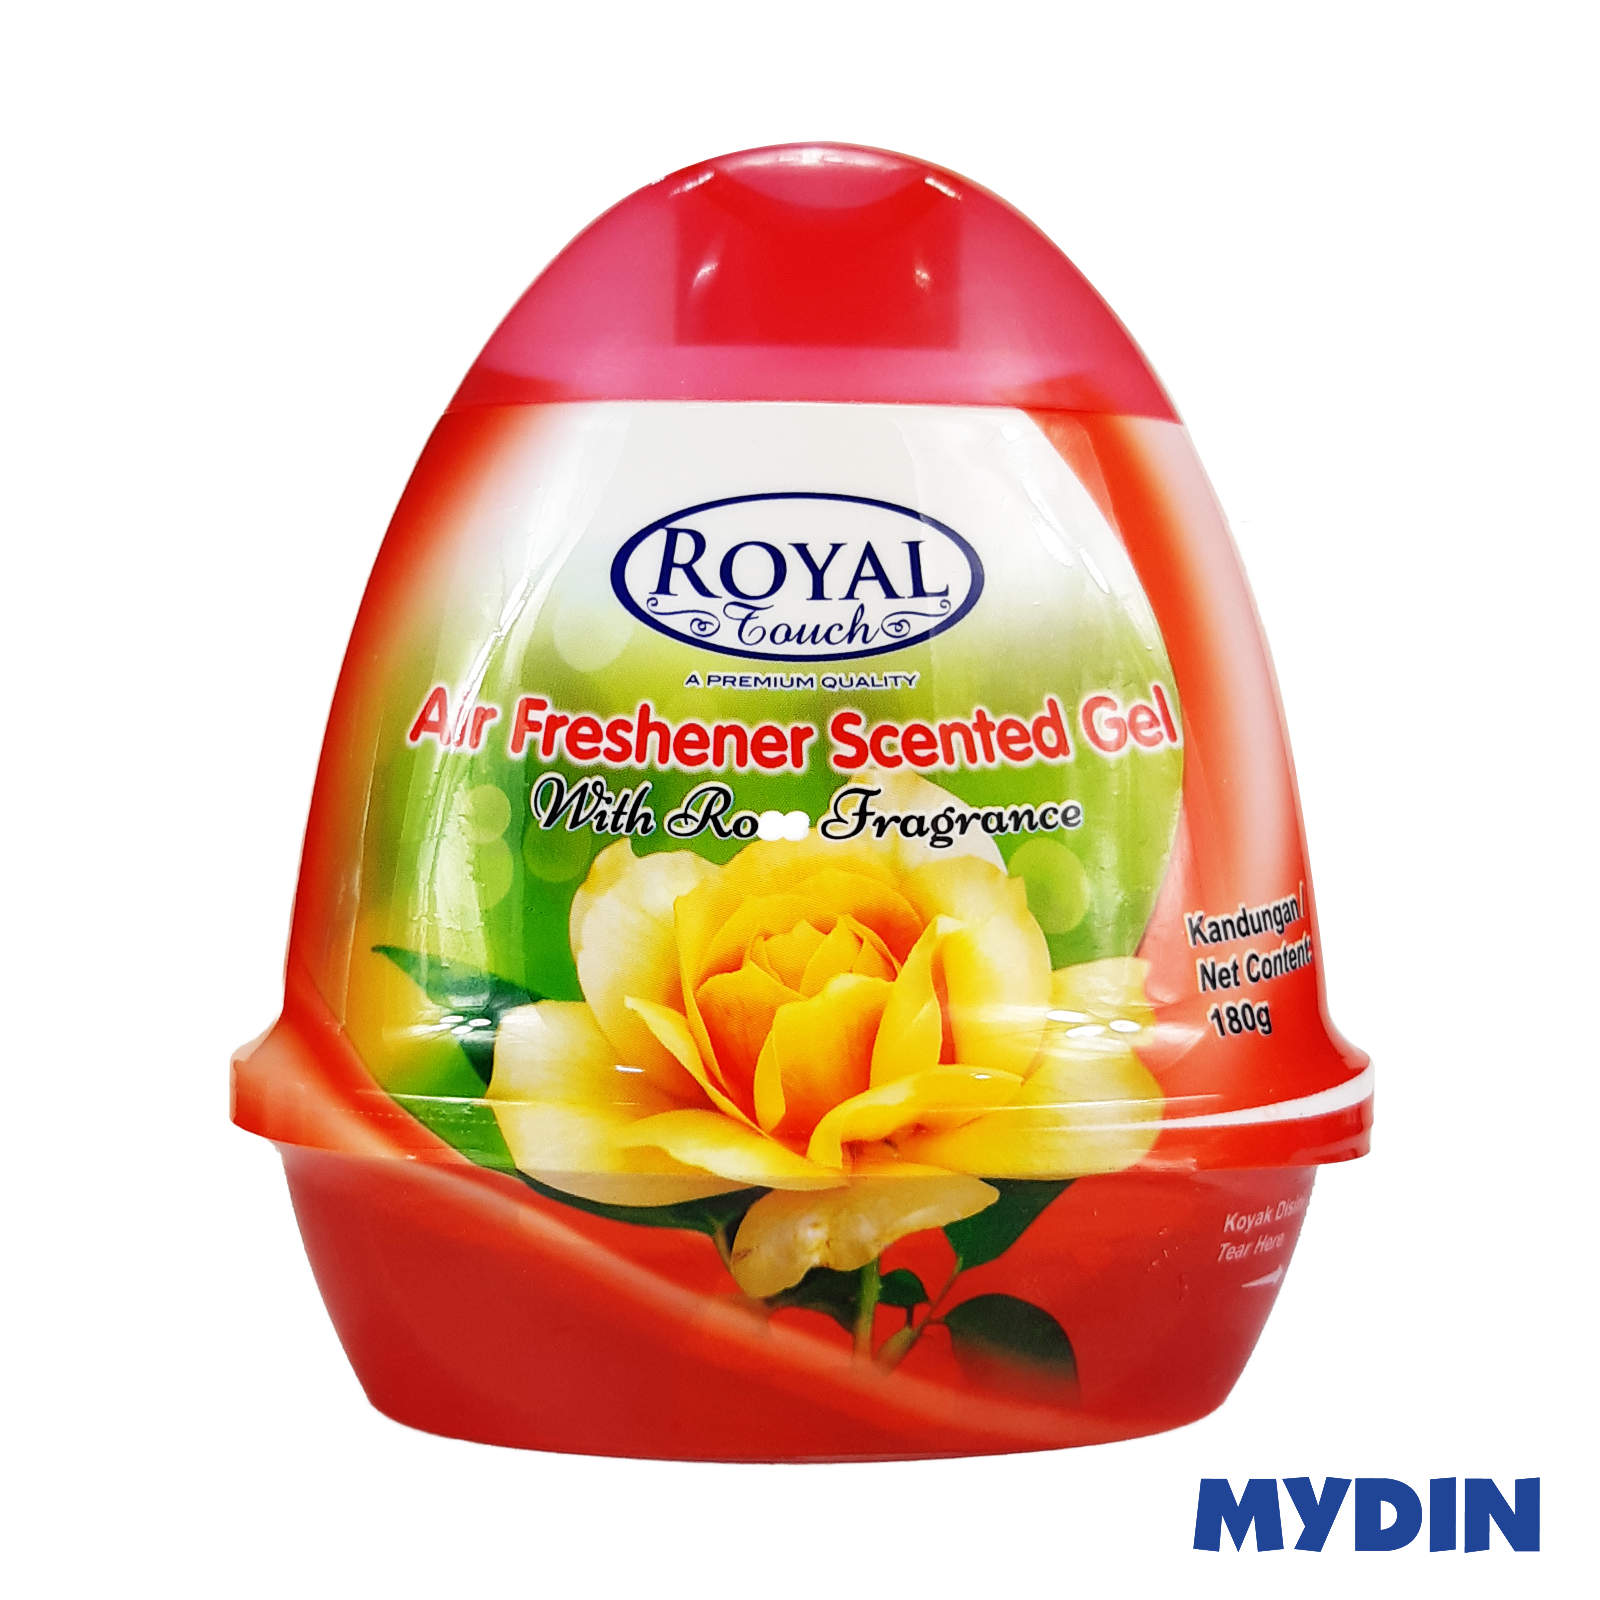 Royal Touch Air Freshener Scented Gel 180g (5 Variants)